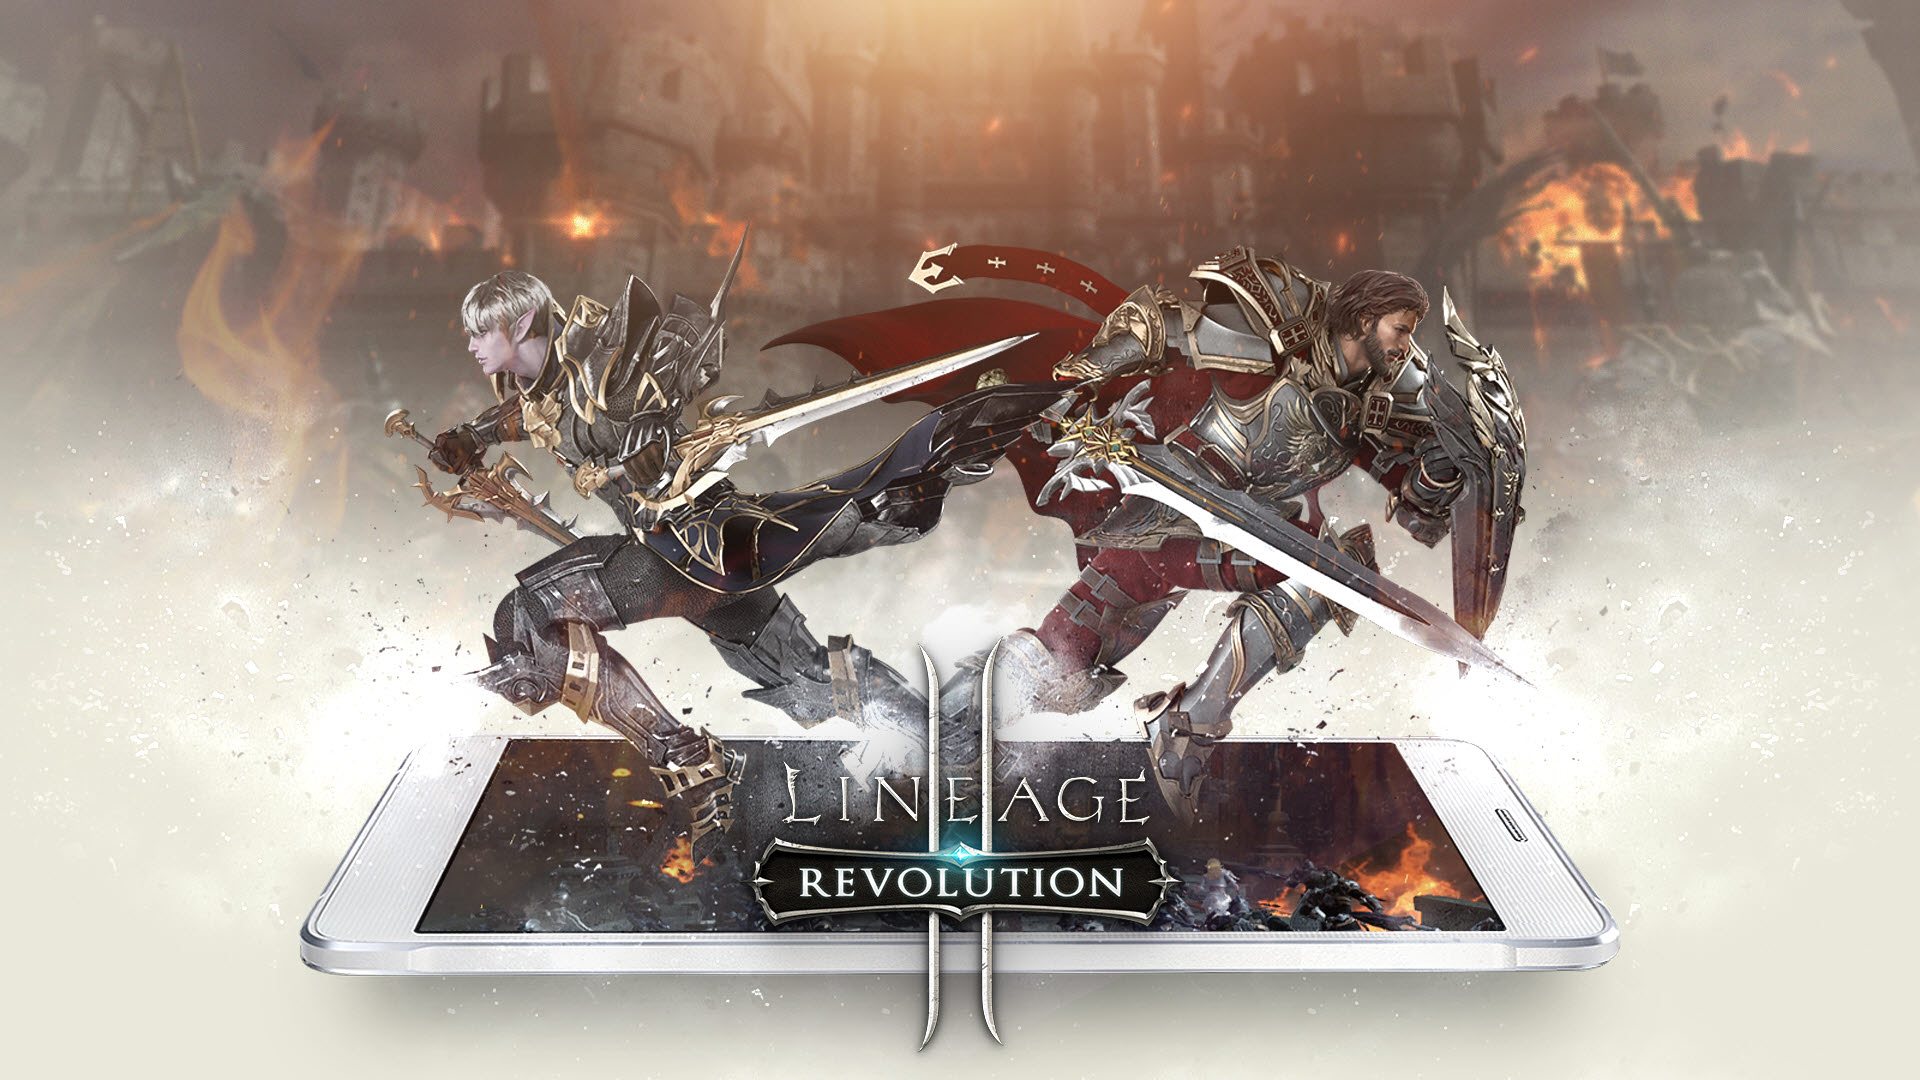 lineage 2 revolution clan war tips